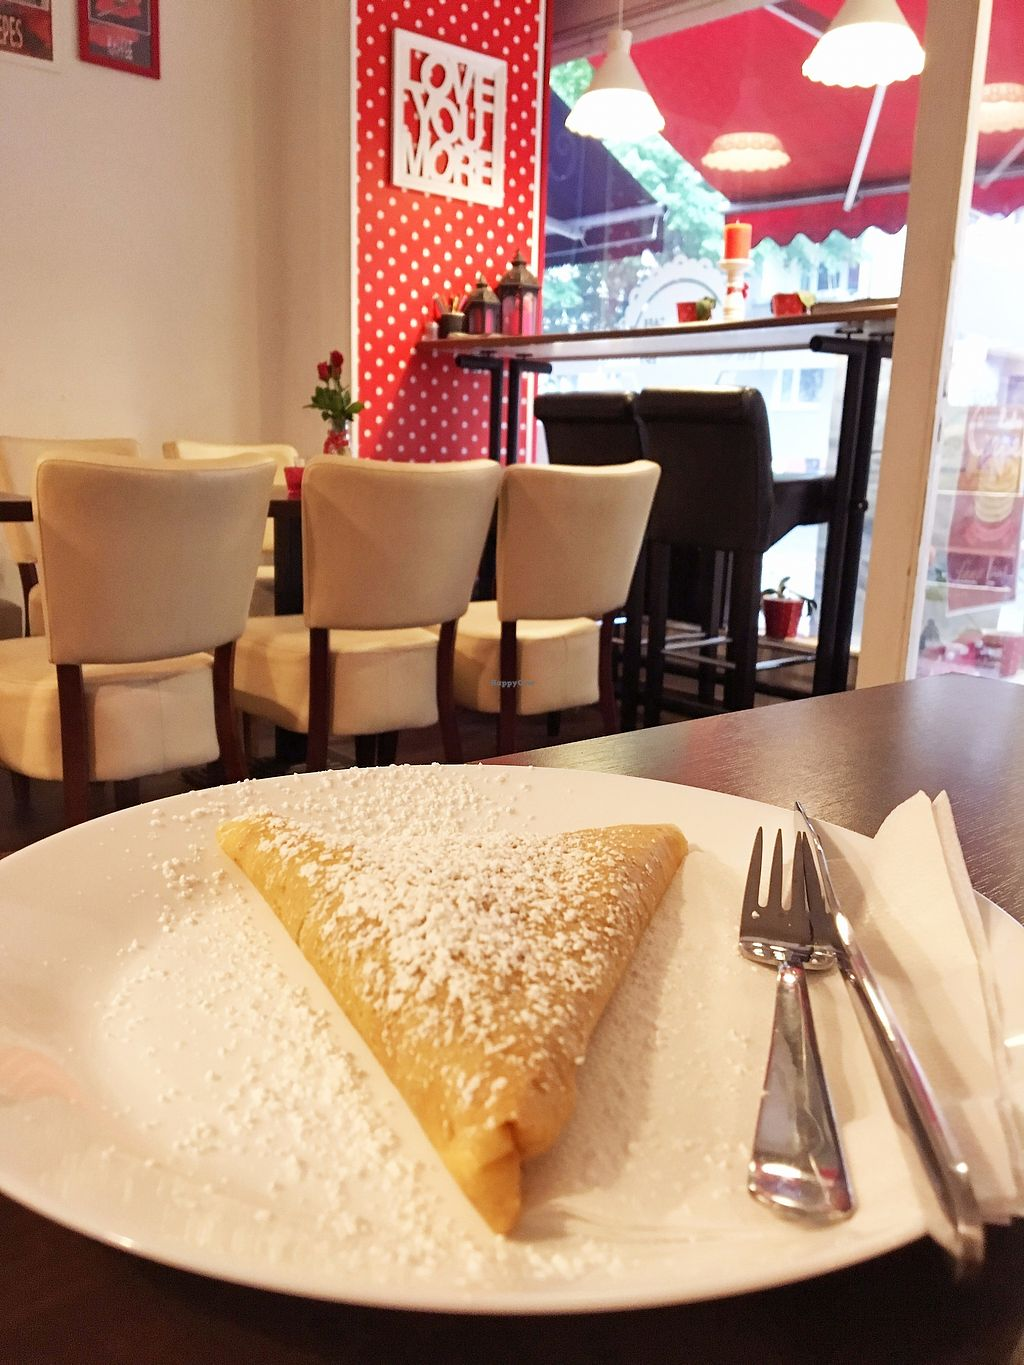 """Photo of Roka Bell Eis Cafe and Creperie  by <a href=""""/members/profile/Dani%C3%ABlleRozeboom"""">DaniëlleRozeboom</a> <br/>Vegan nutella Crêpe <br/> July 2, 2017  - <a href='/contact/abuse/image/47299/275966'>Report</a>"""